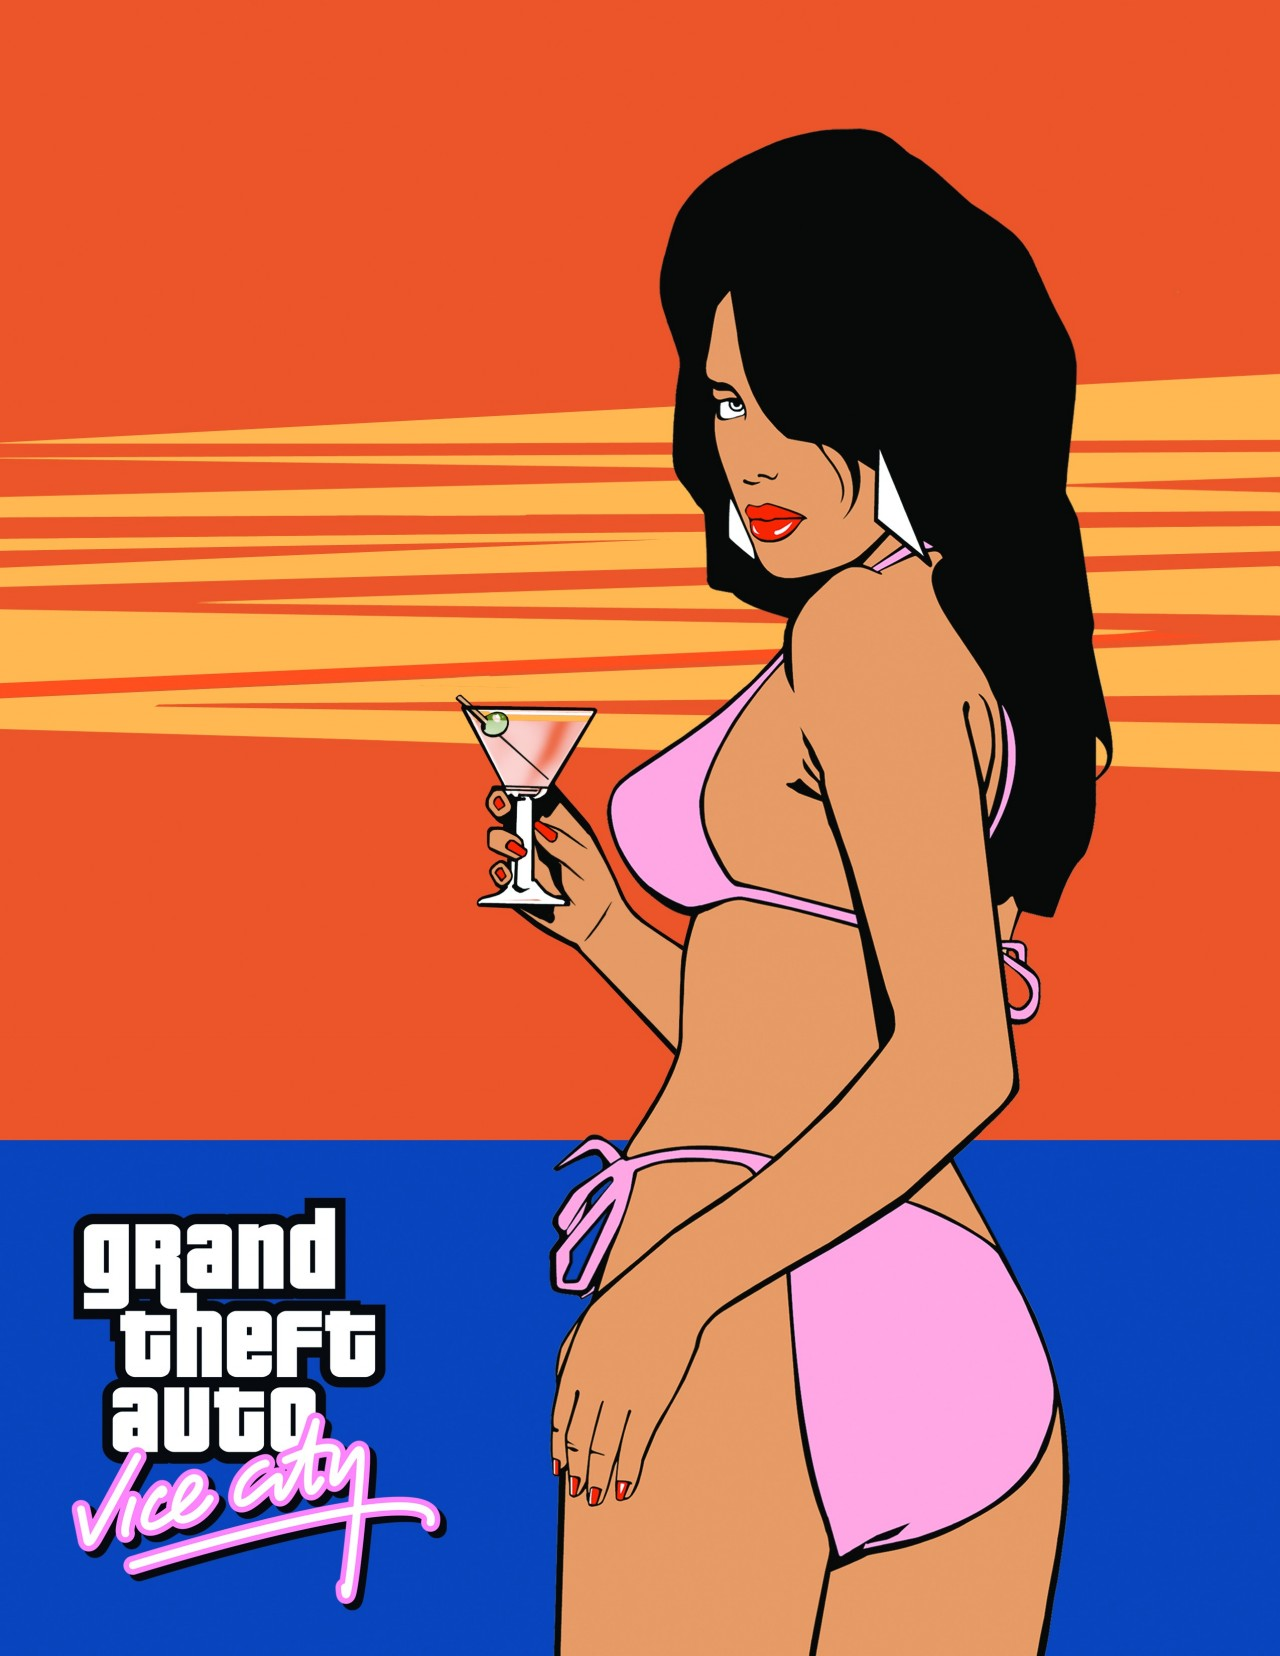 Vice city porn pic adult photo